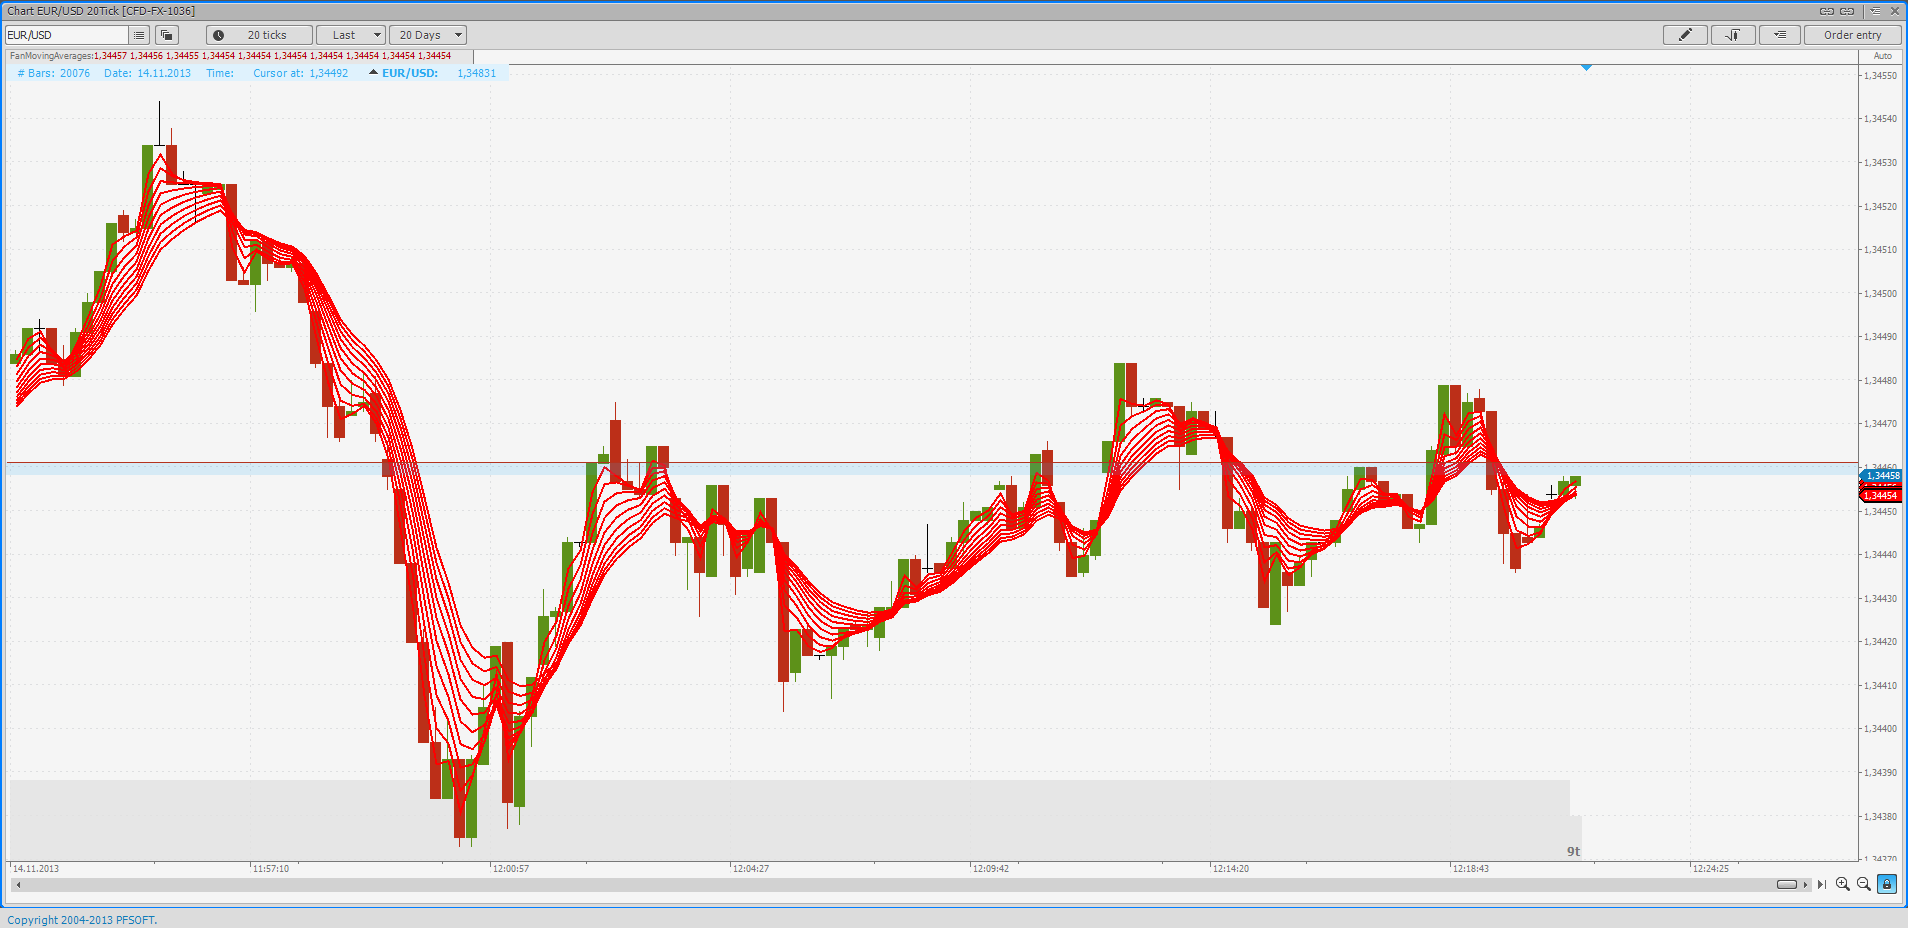 Moving Average Fan, EUR/USD, 20 tick chart, changes to SetIndicatorLine